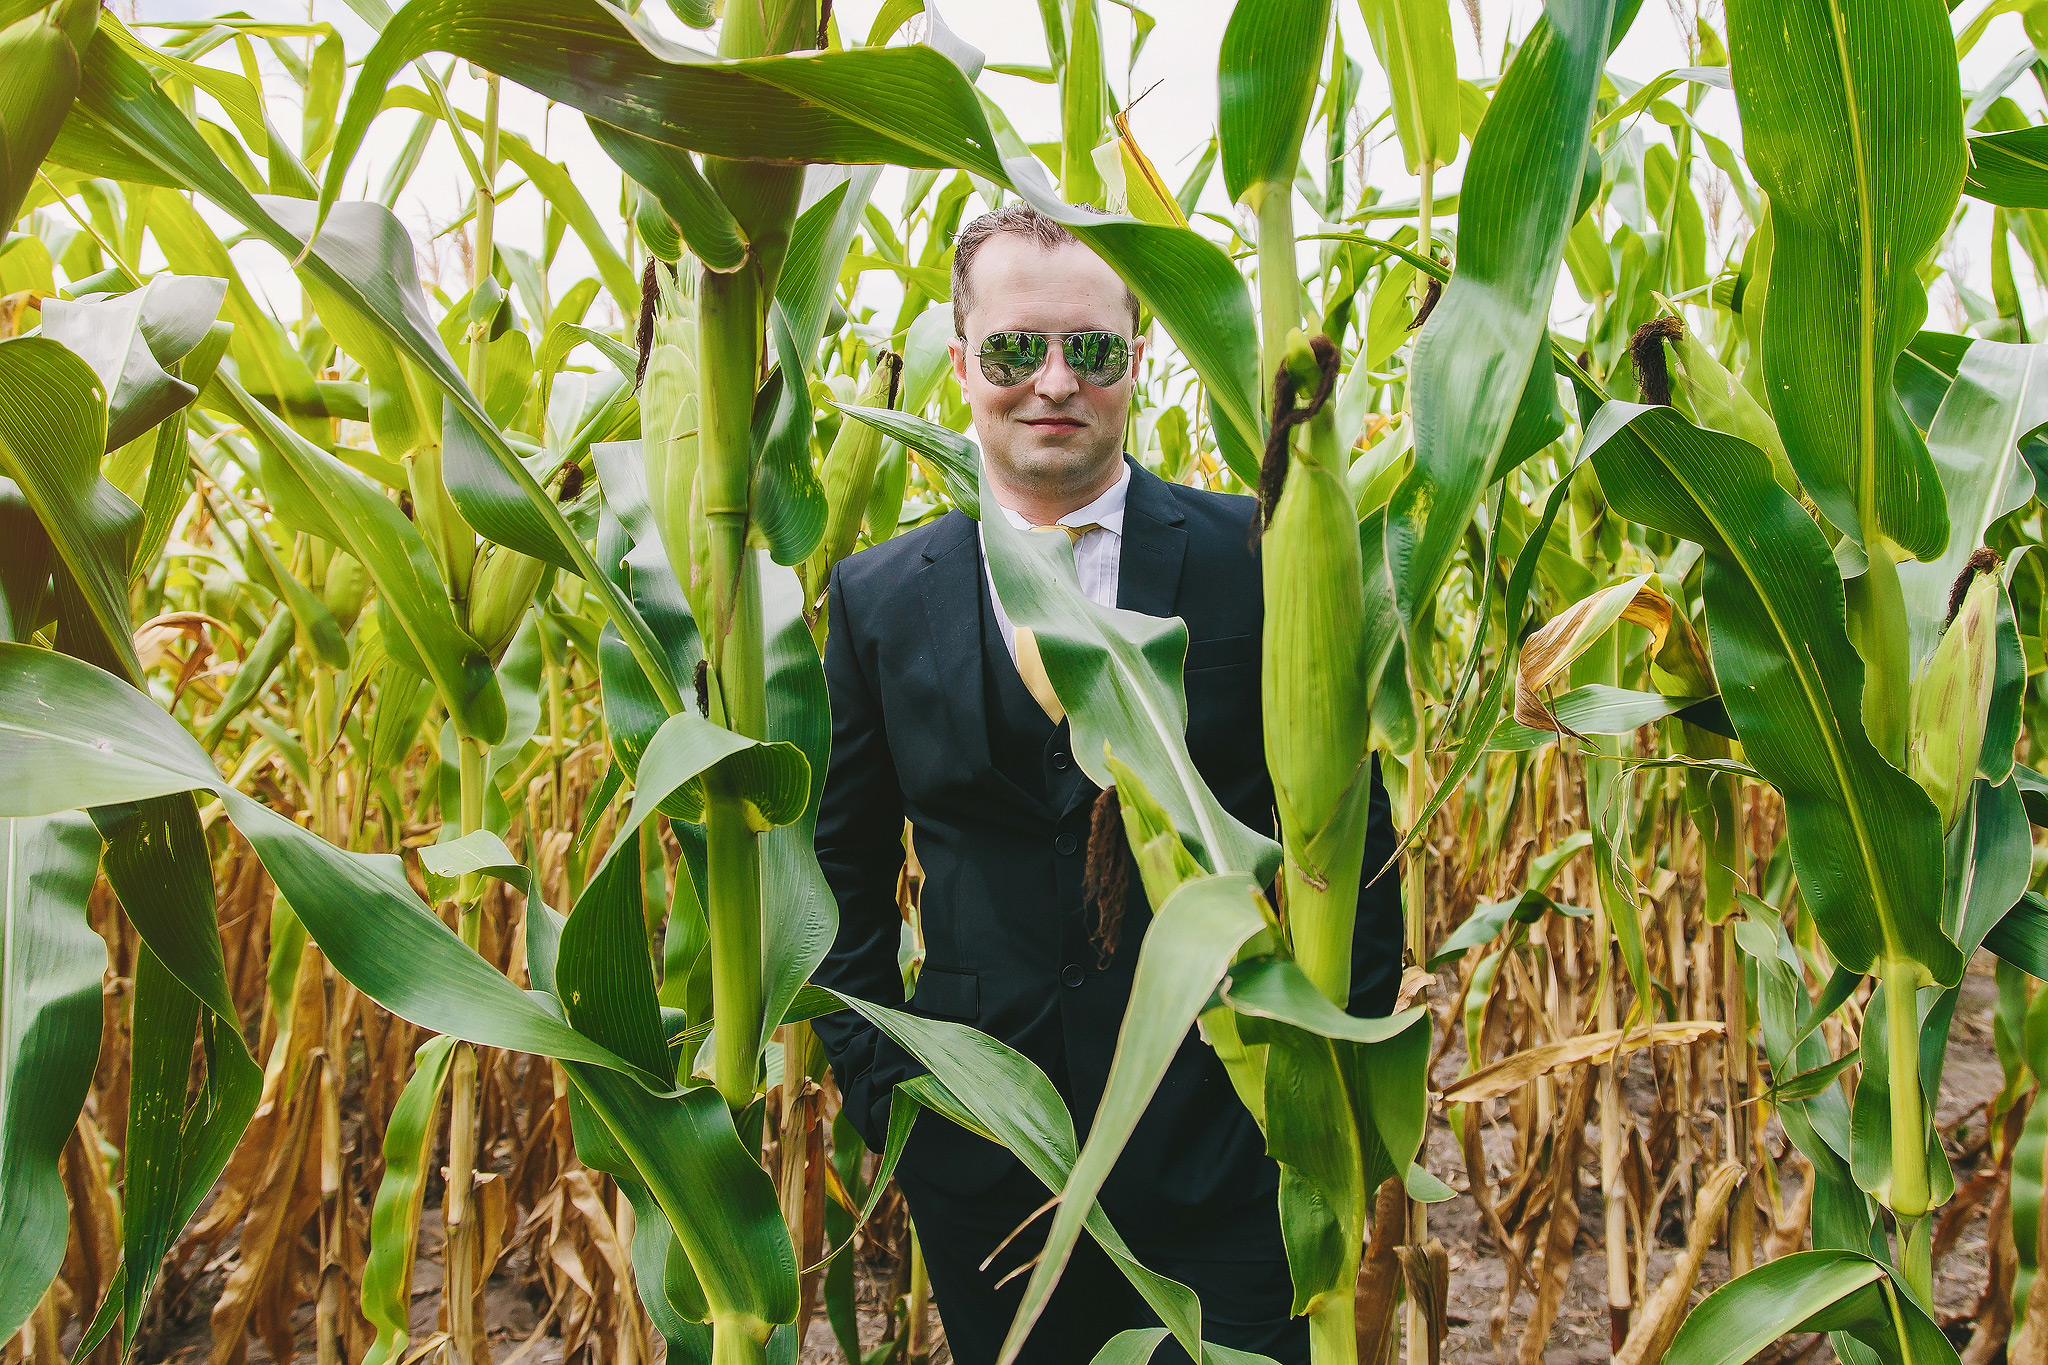 Groom in a cornfield - photo by Ruan Redelinghuys Photography